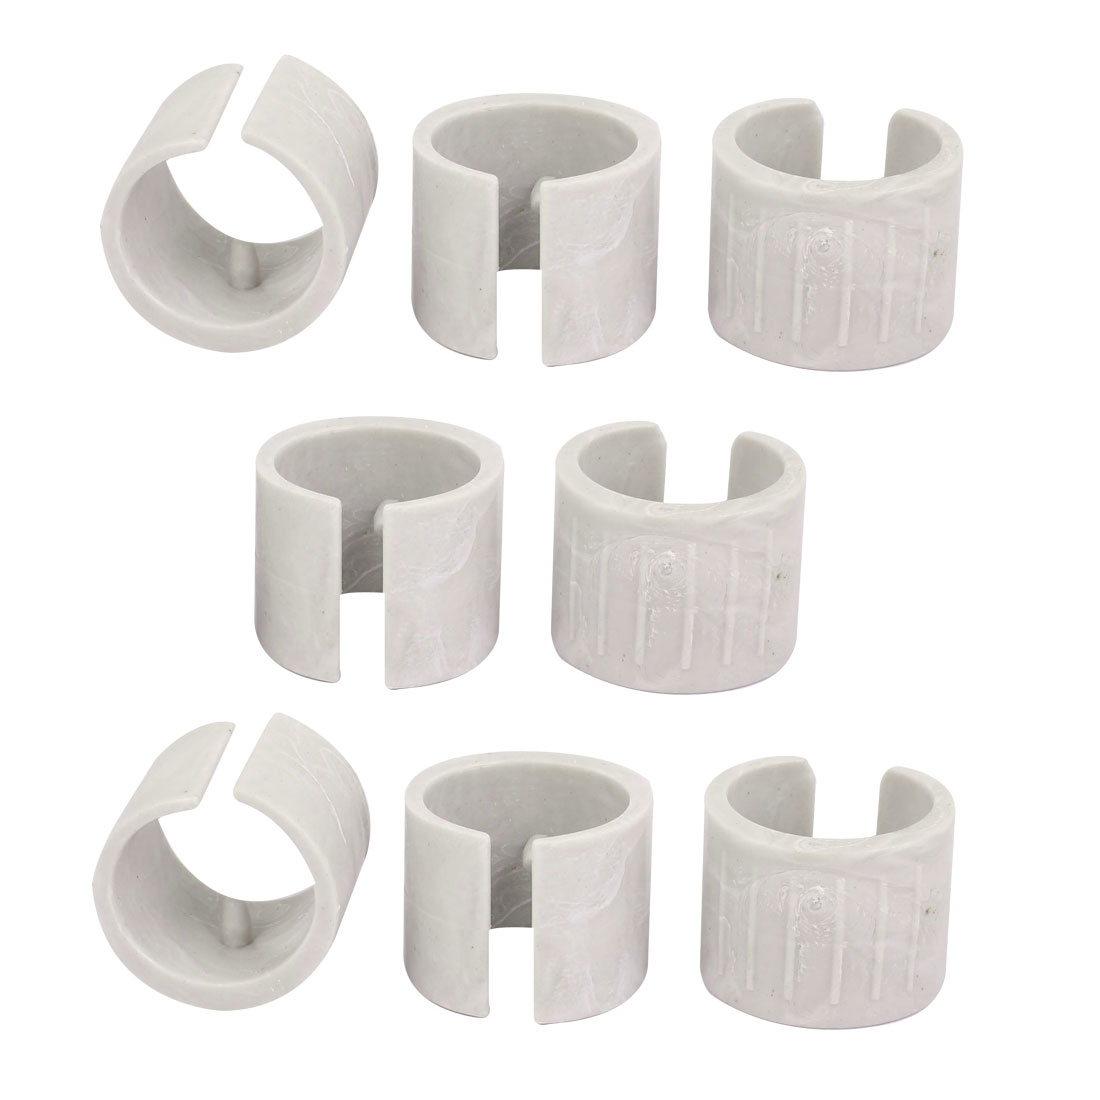 32mm Dia Antislilp Plastic Round Pipe Clamp Foot Pads for Table 8Pcs White